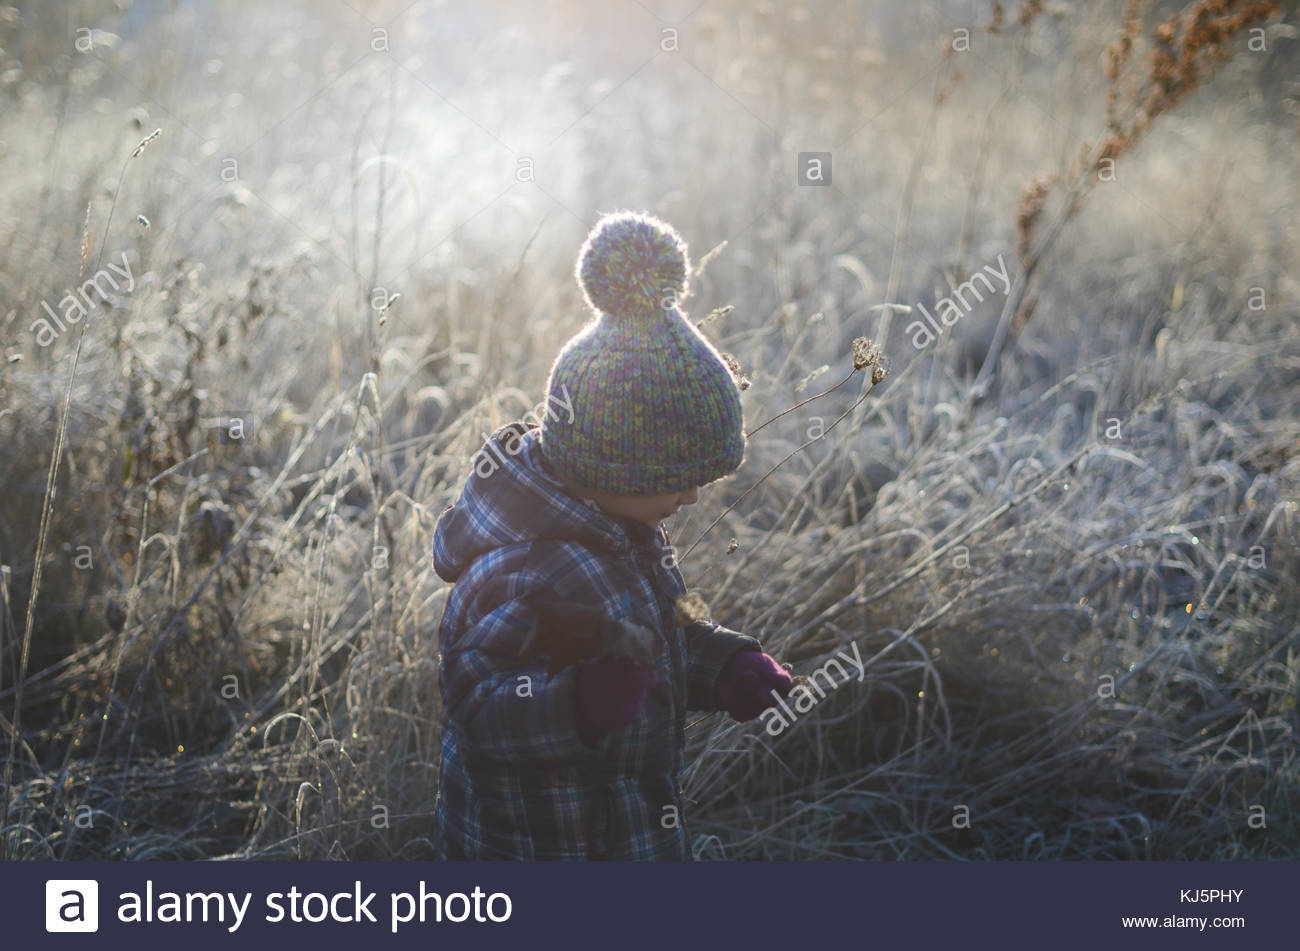 Toddler in meadow - Stock Image